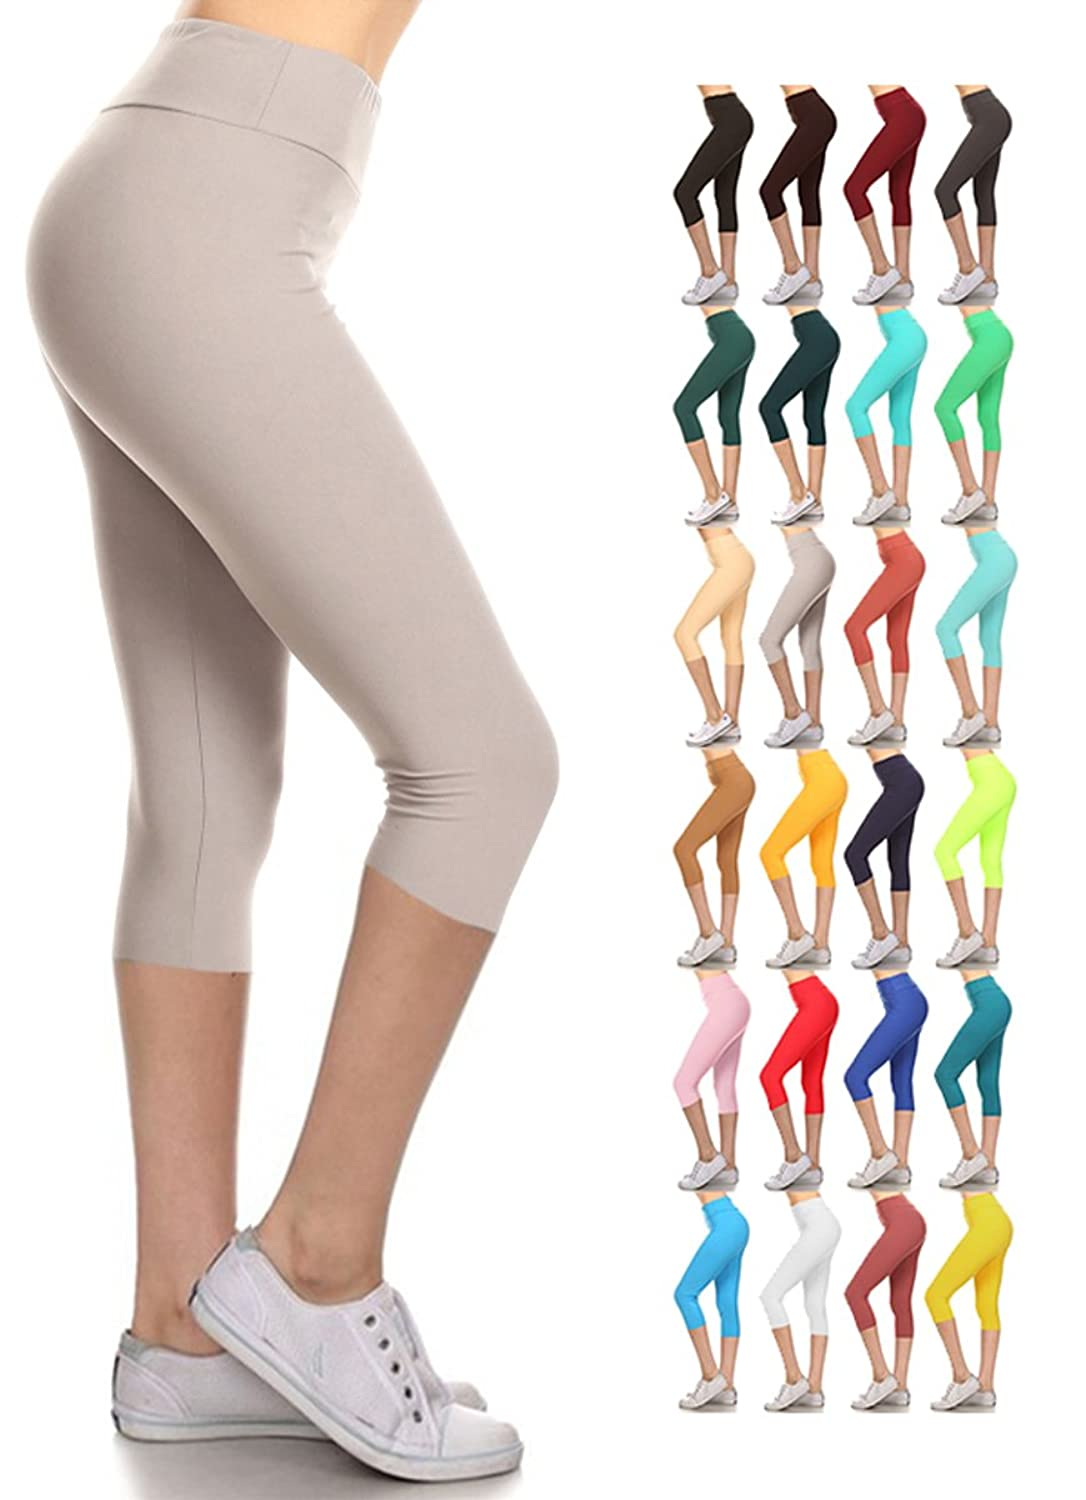 eded51e15f8079 92% Polyester 8% Spandex / High Quality Soft Fabric One Size Fits Most,  Super Stretch Essential comfort and stylish Yoga Cropped Capri leggings  perfect for ...